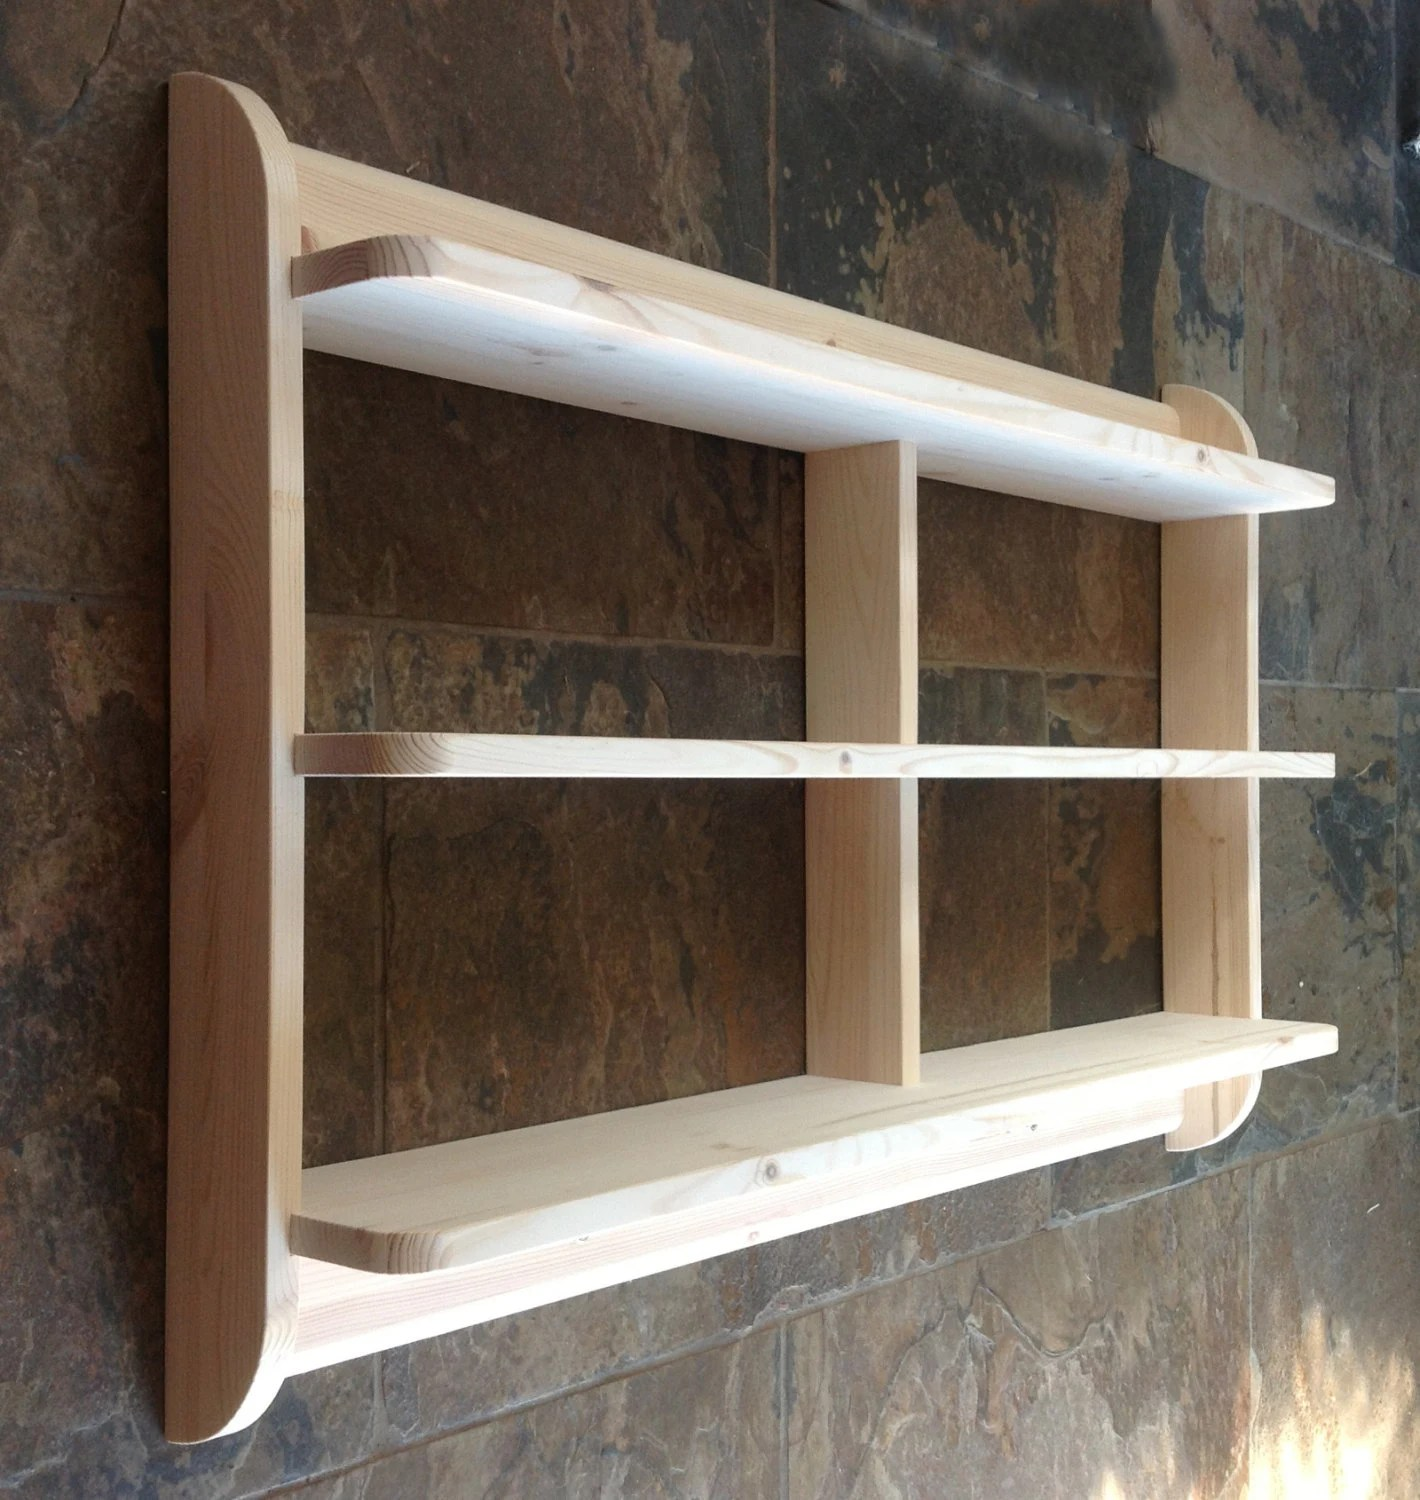 kitchen shelf unit inexpensive flooring wide wall mounted open back shelves or dvd etsy image 0